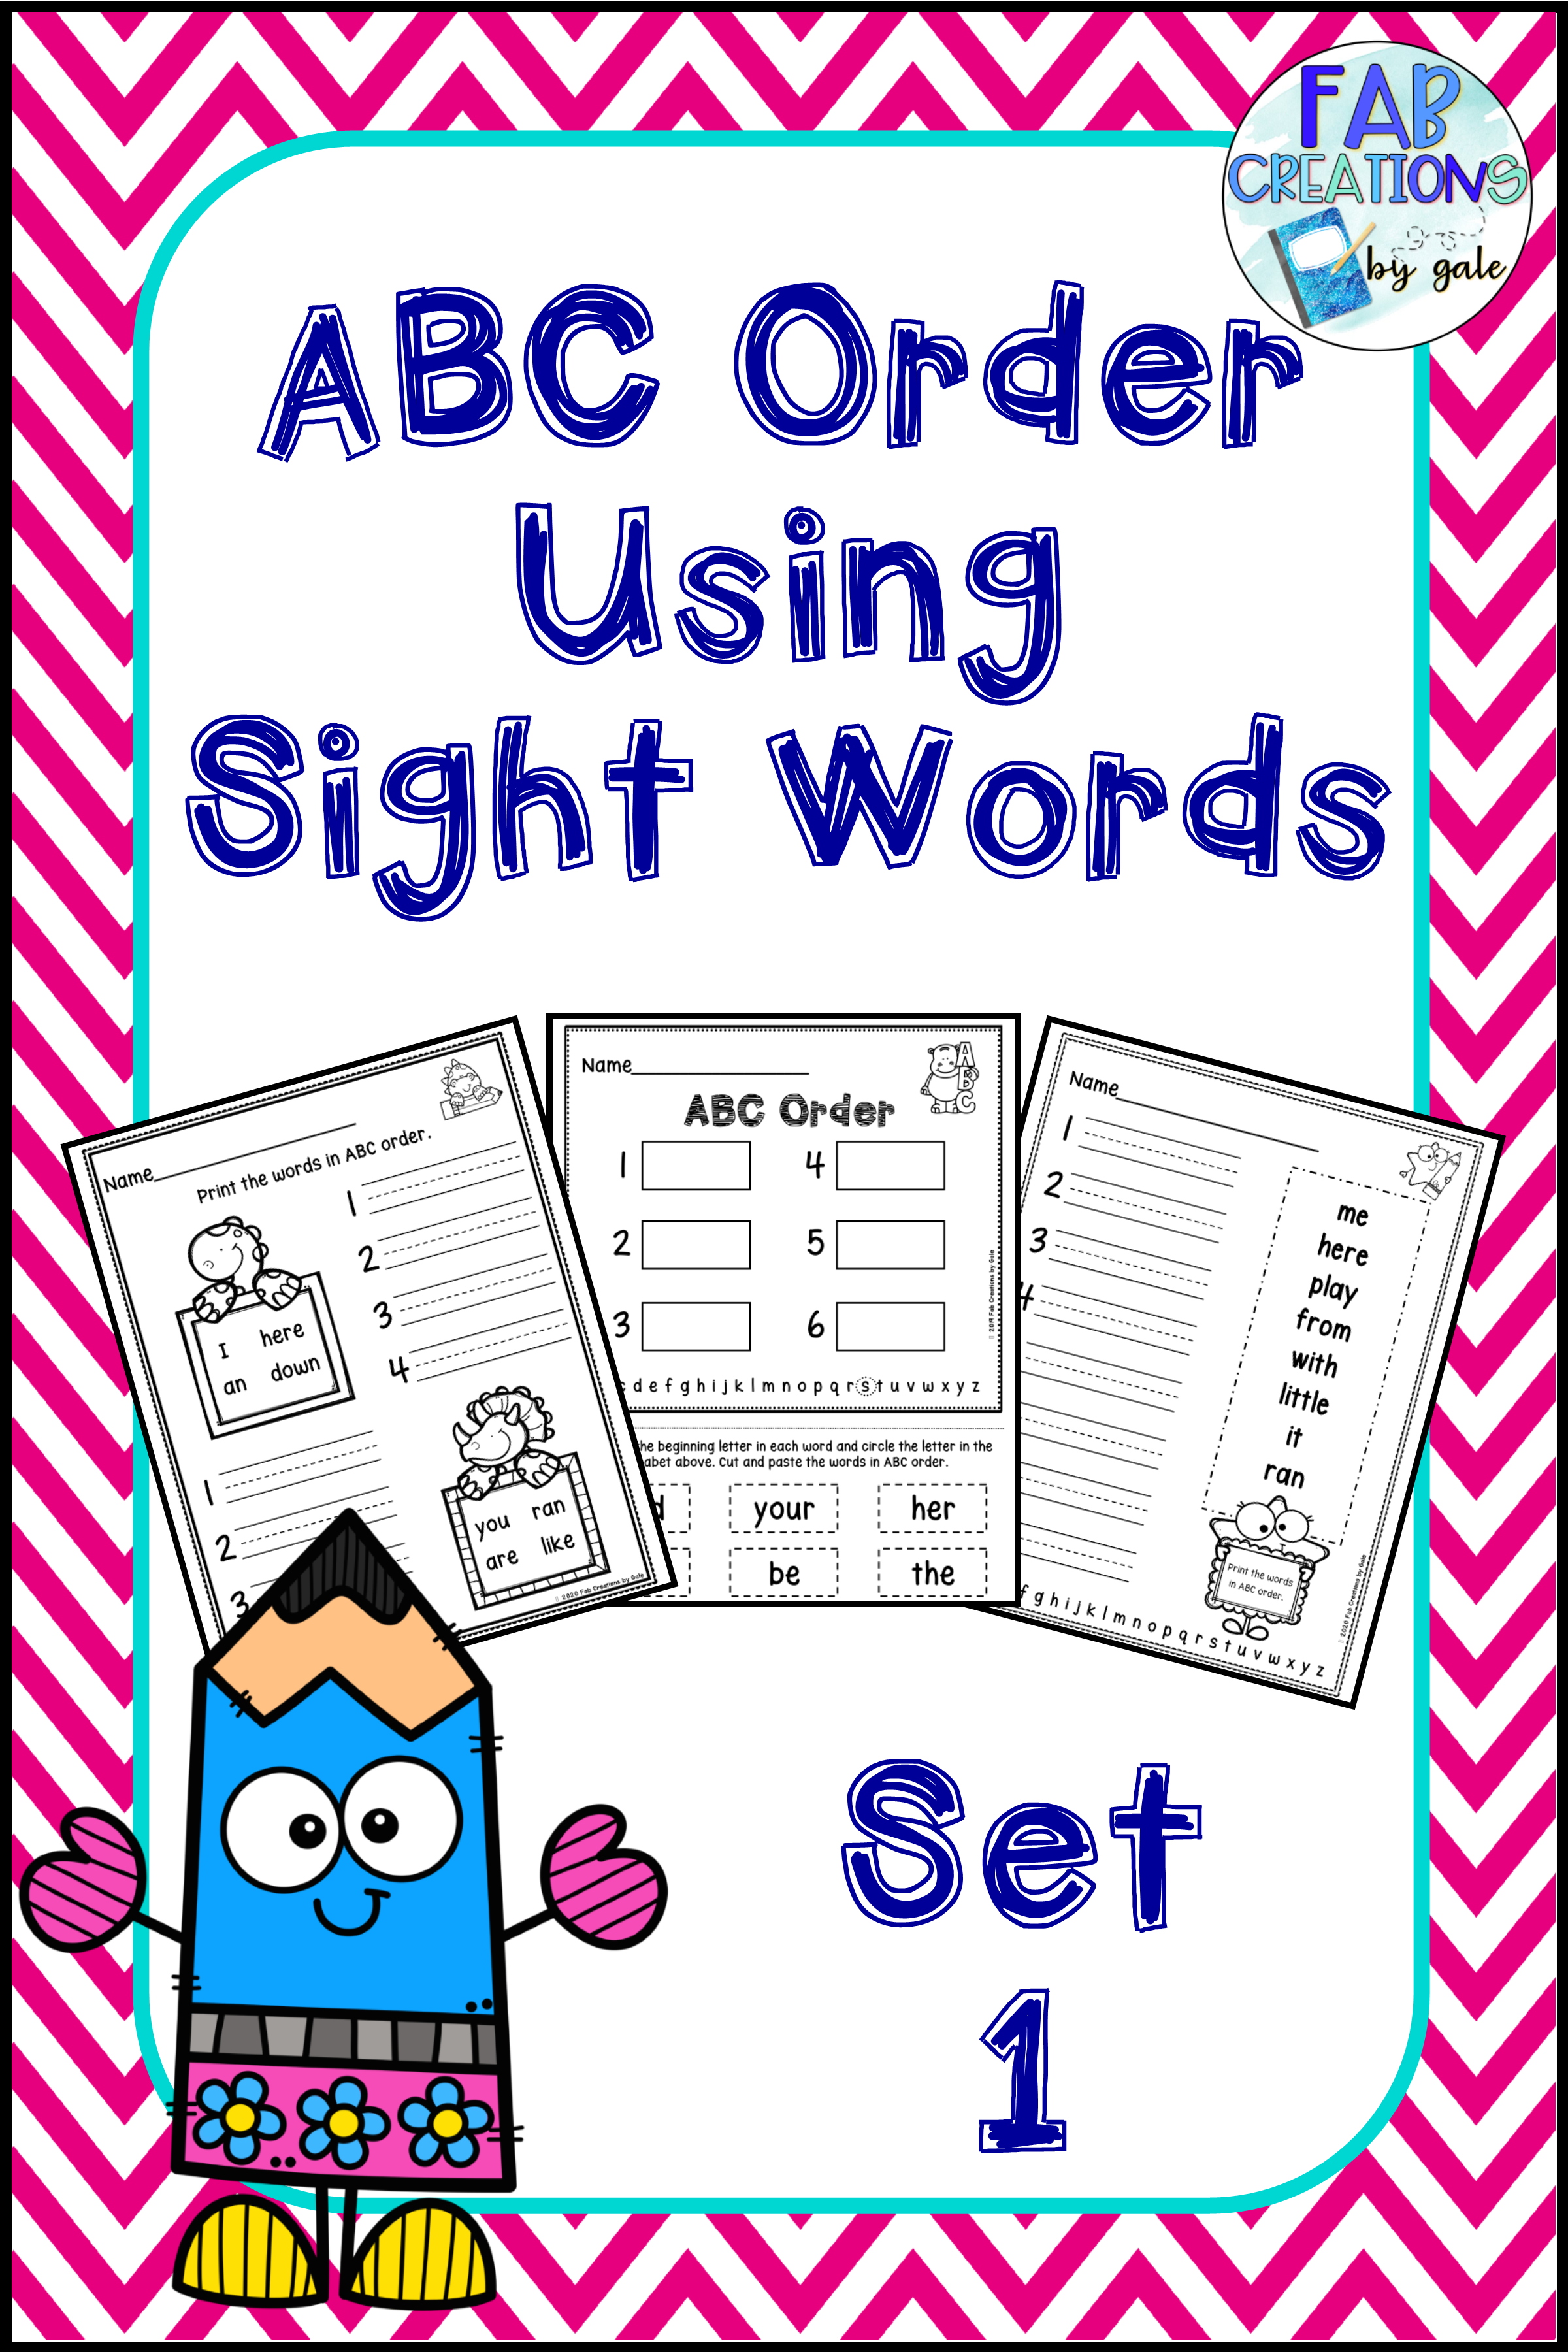 Abc Order Using Sight Words In